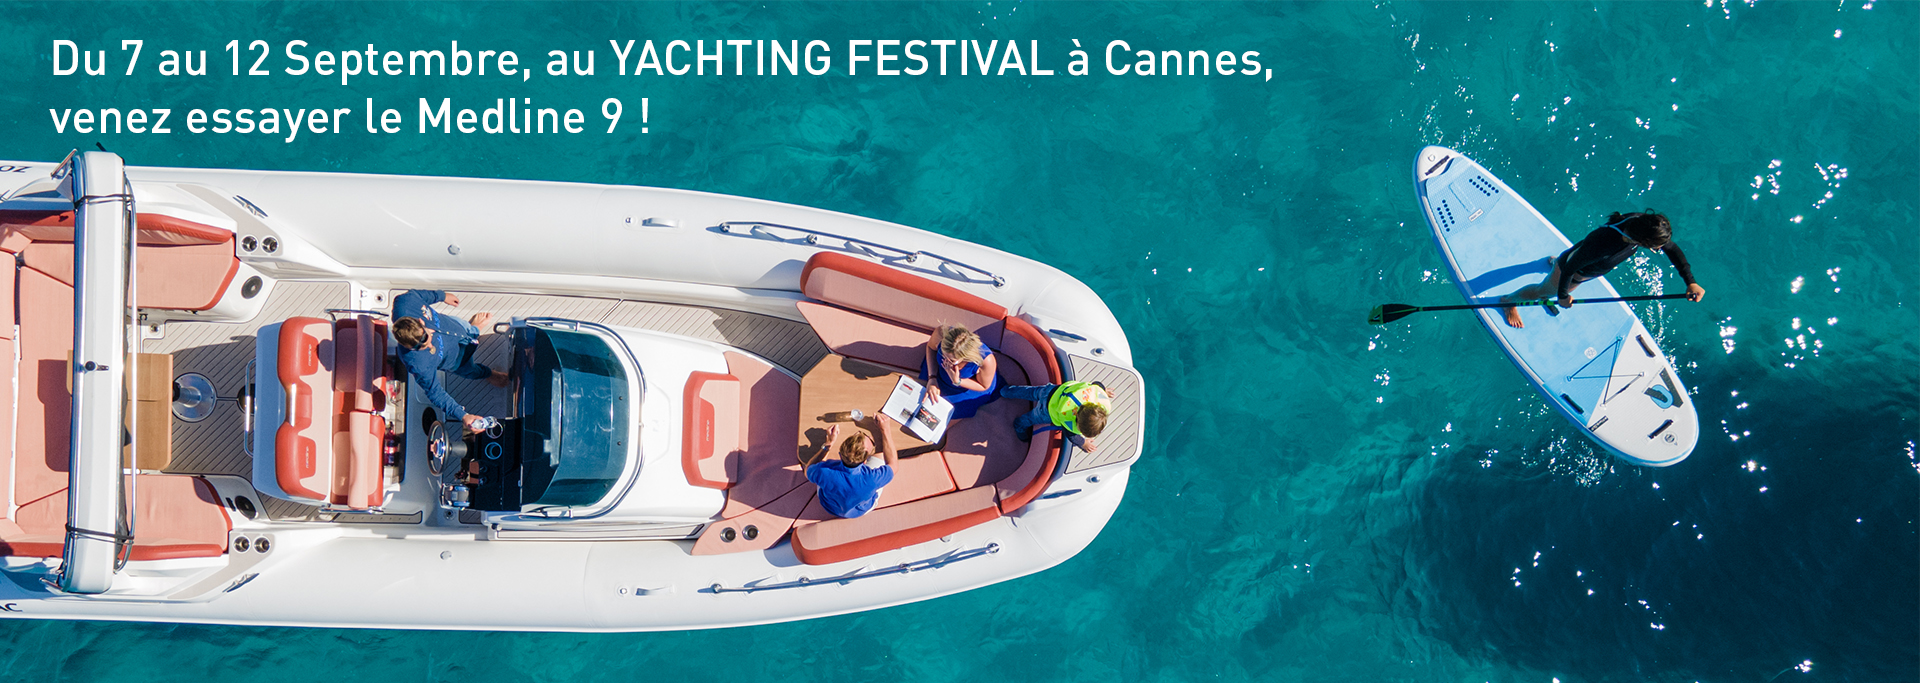 Slider_Page_Cannes